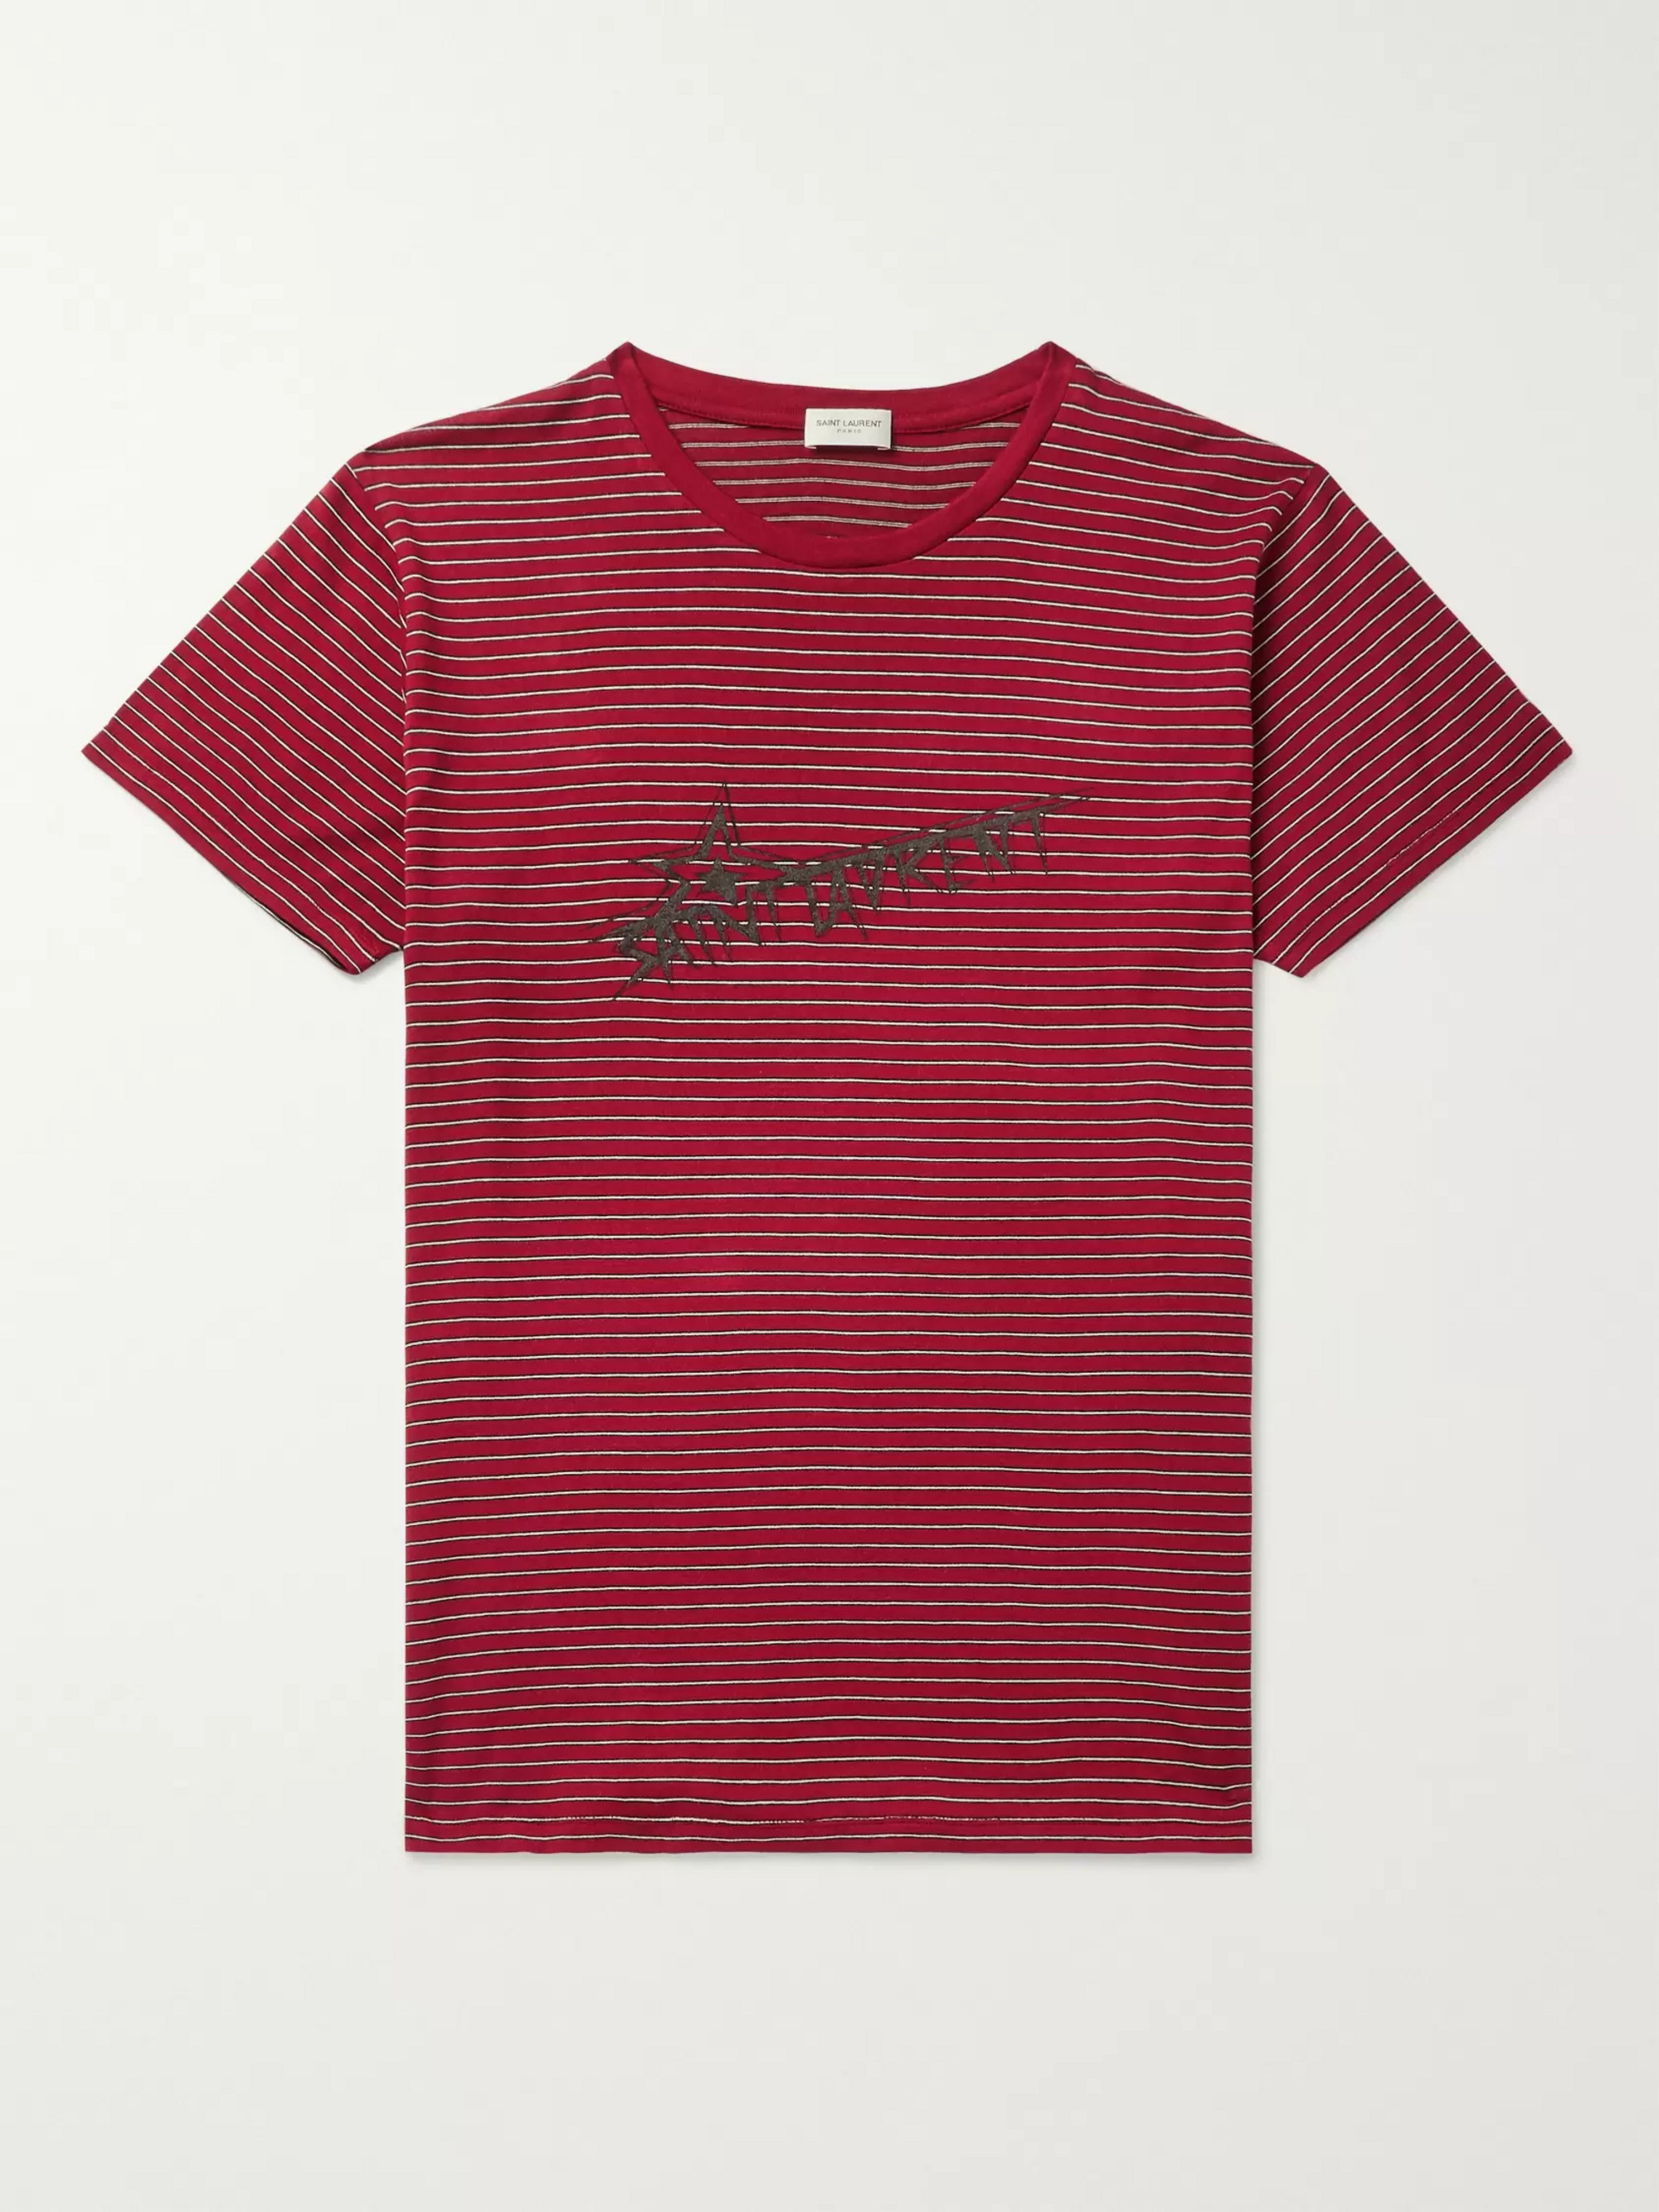 2b4df1e1768 SAINT LAURENT Logo-Print Striped Cotton-Jersey T-Shirt